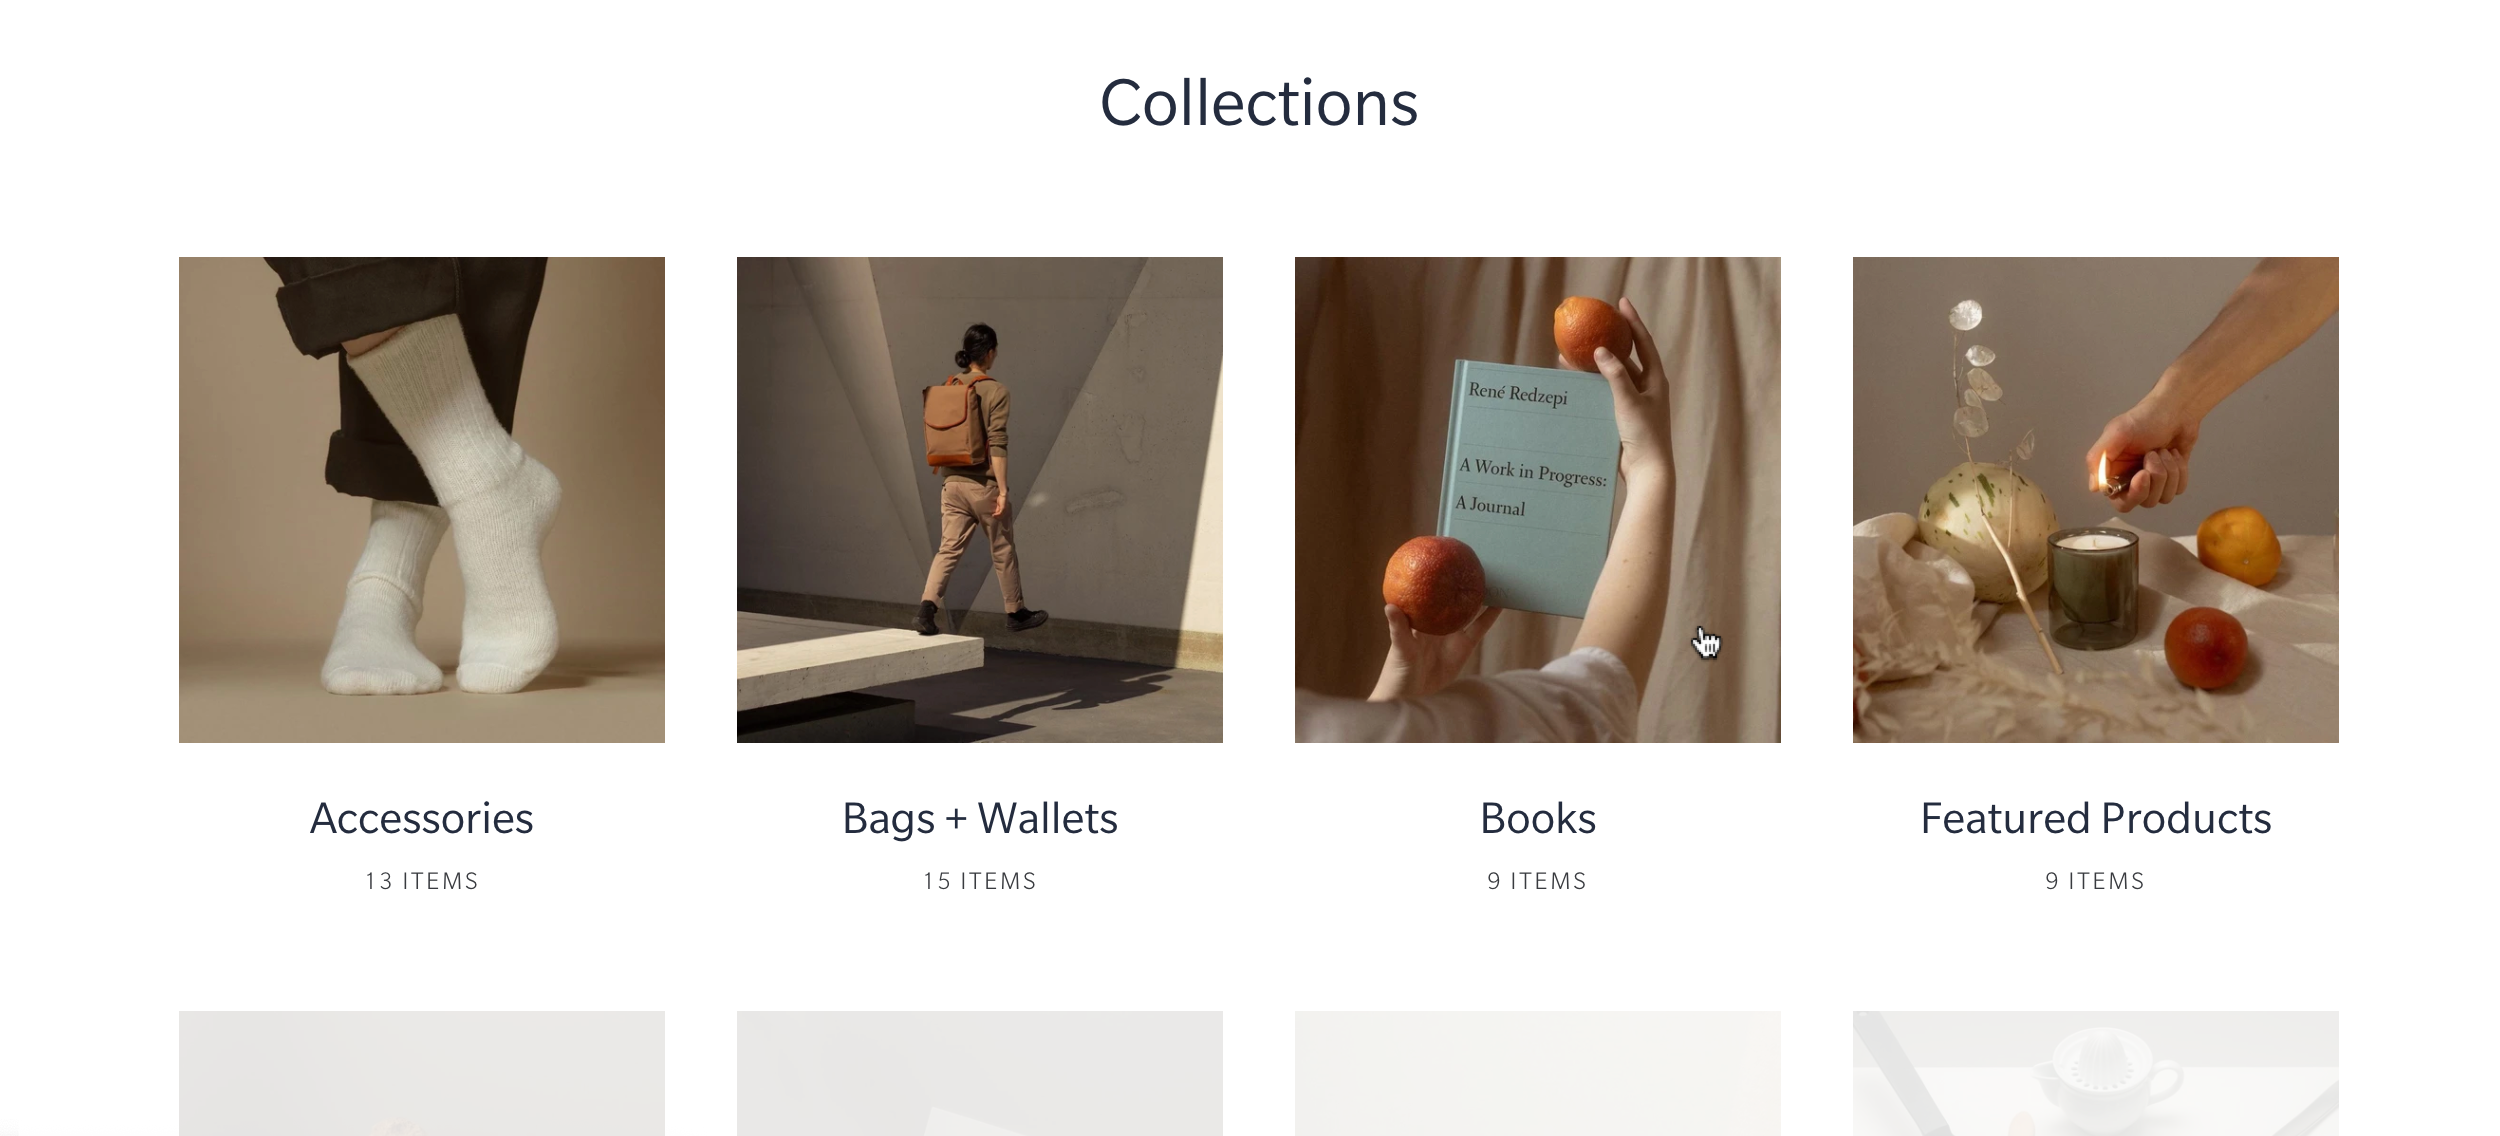 collections_page_in_editions_demo.png